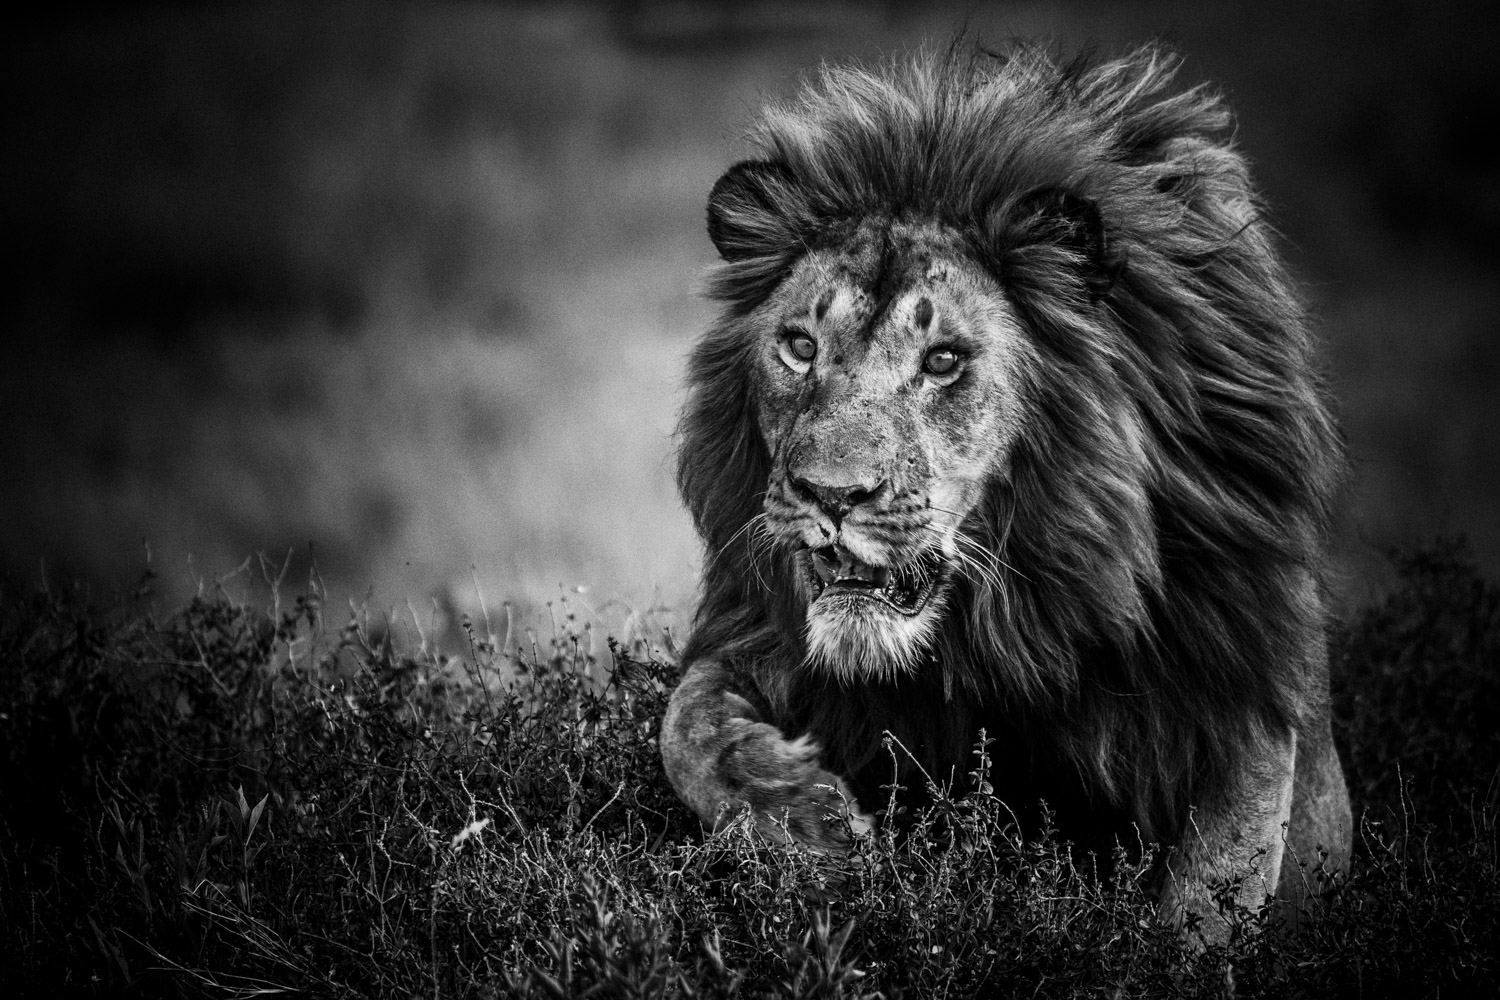 Le lion - Photo de Laurent Baheux